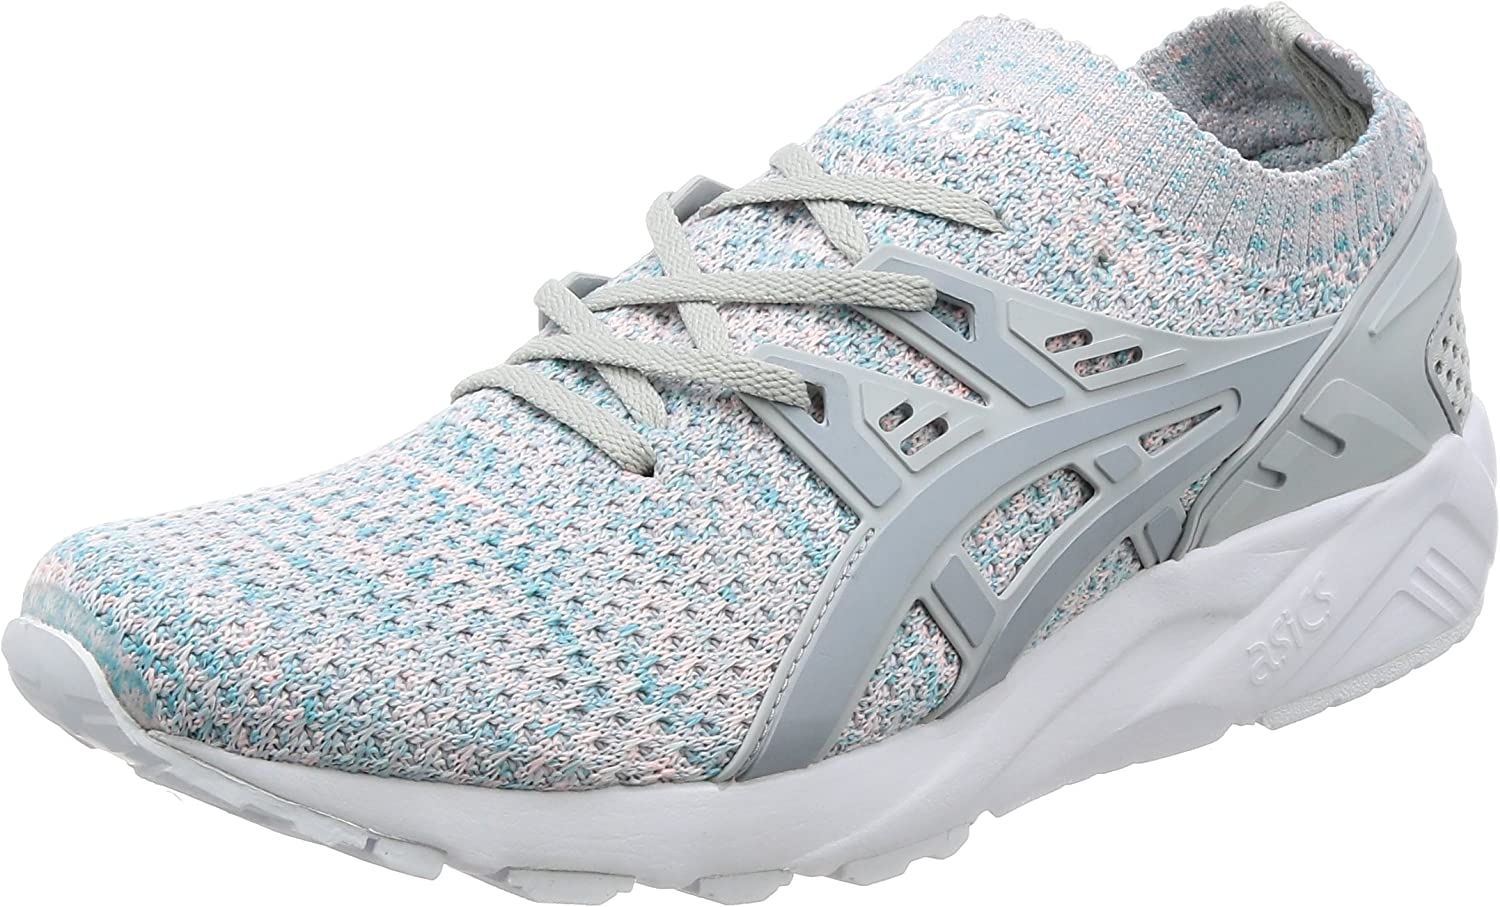 ASICS Gel-Kayano Trainer Knit Mens Running Trainers Hn7M4 Sneakers Shoes